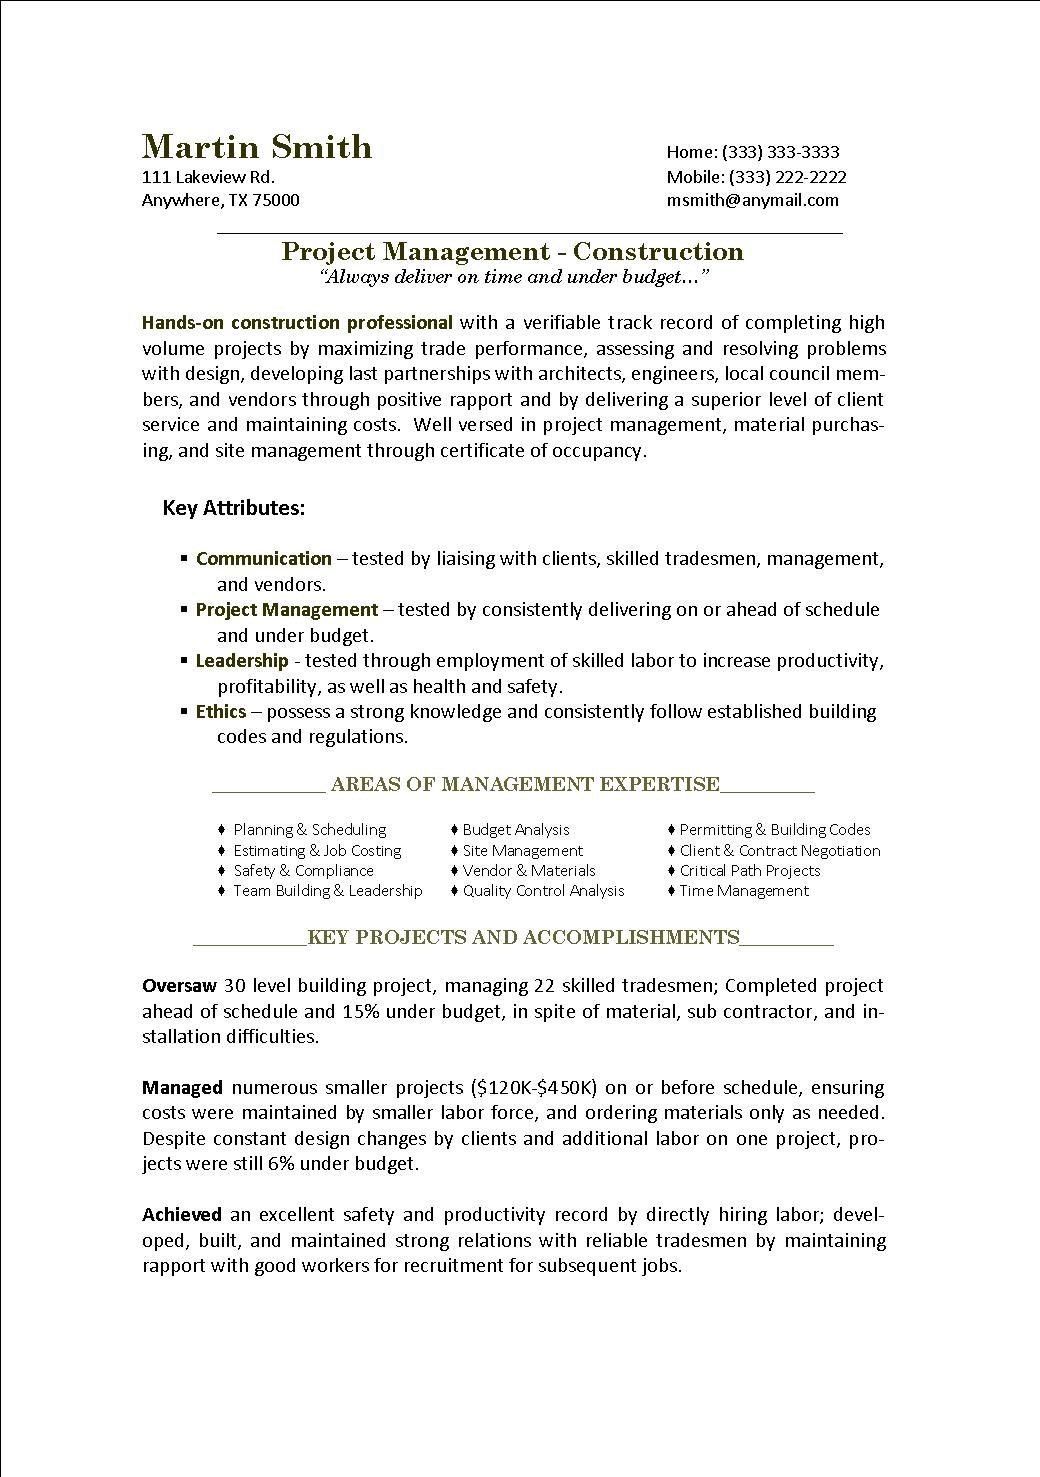 Materials Manager Resume Military To Civilian Resumes  The Vet2Work Job Procurement .